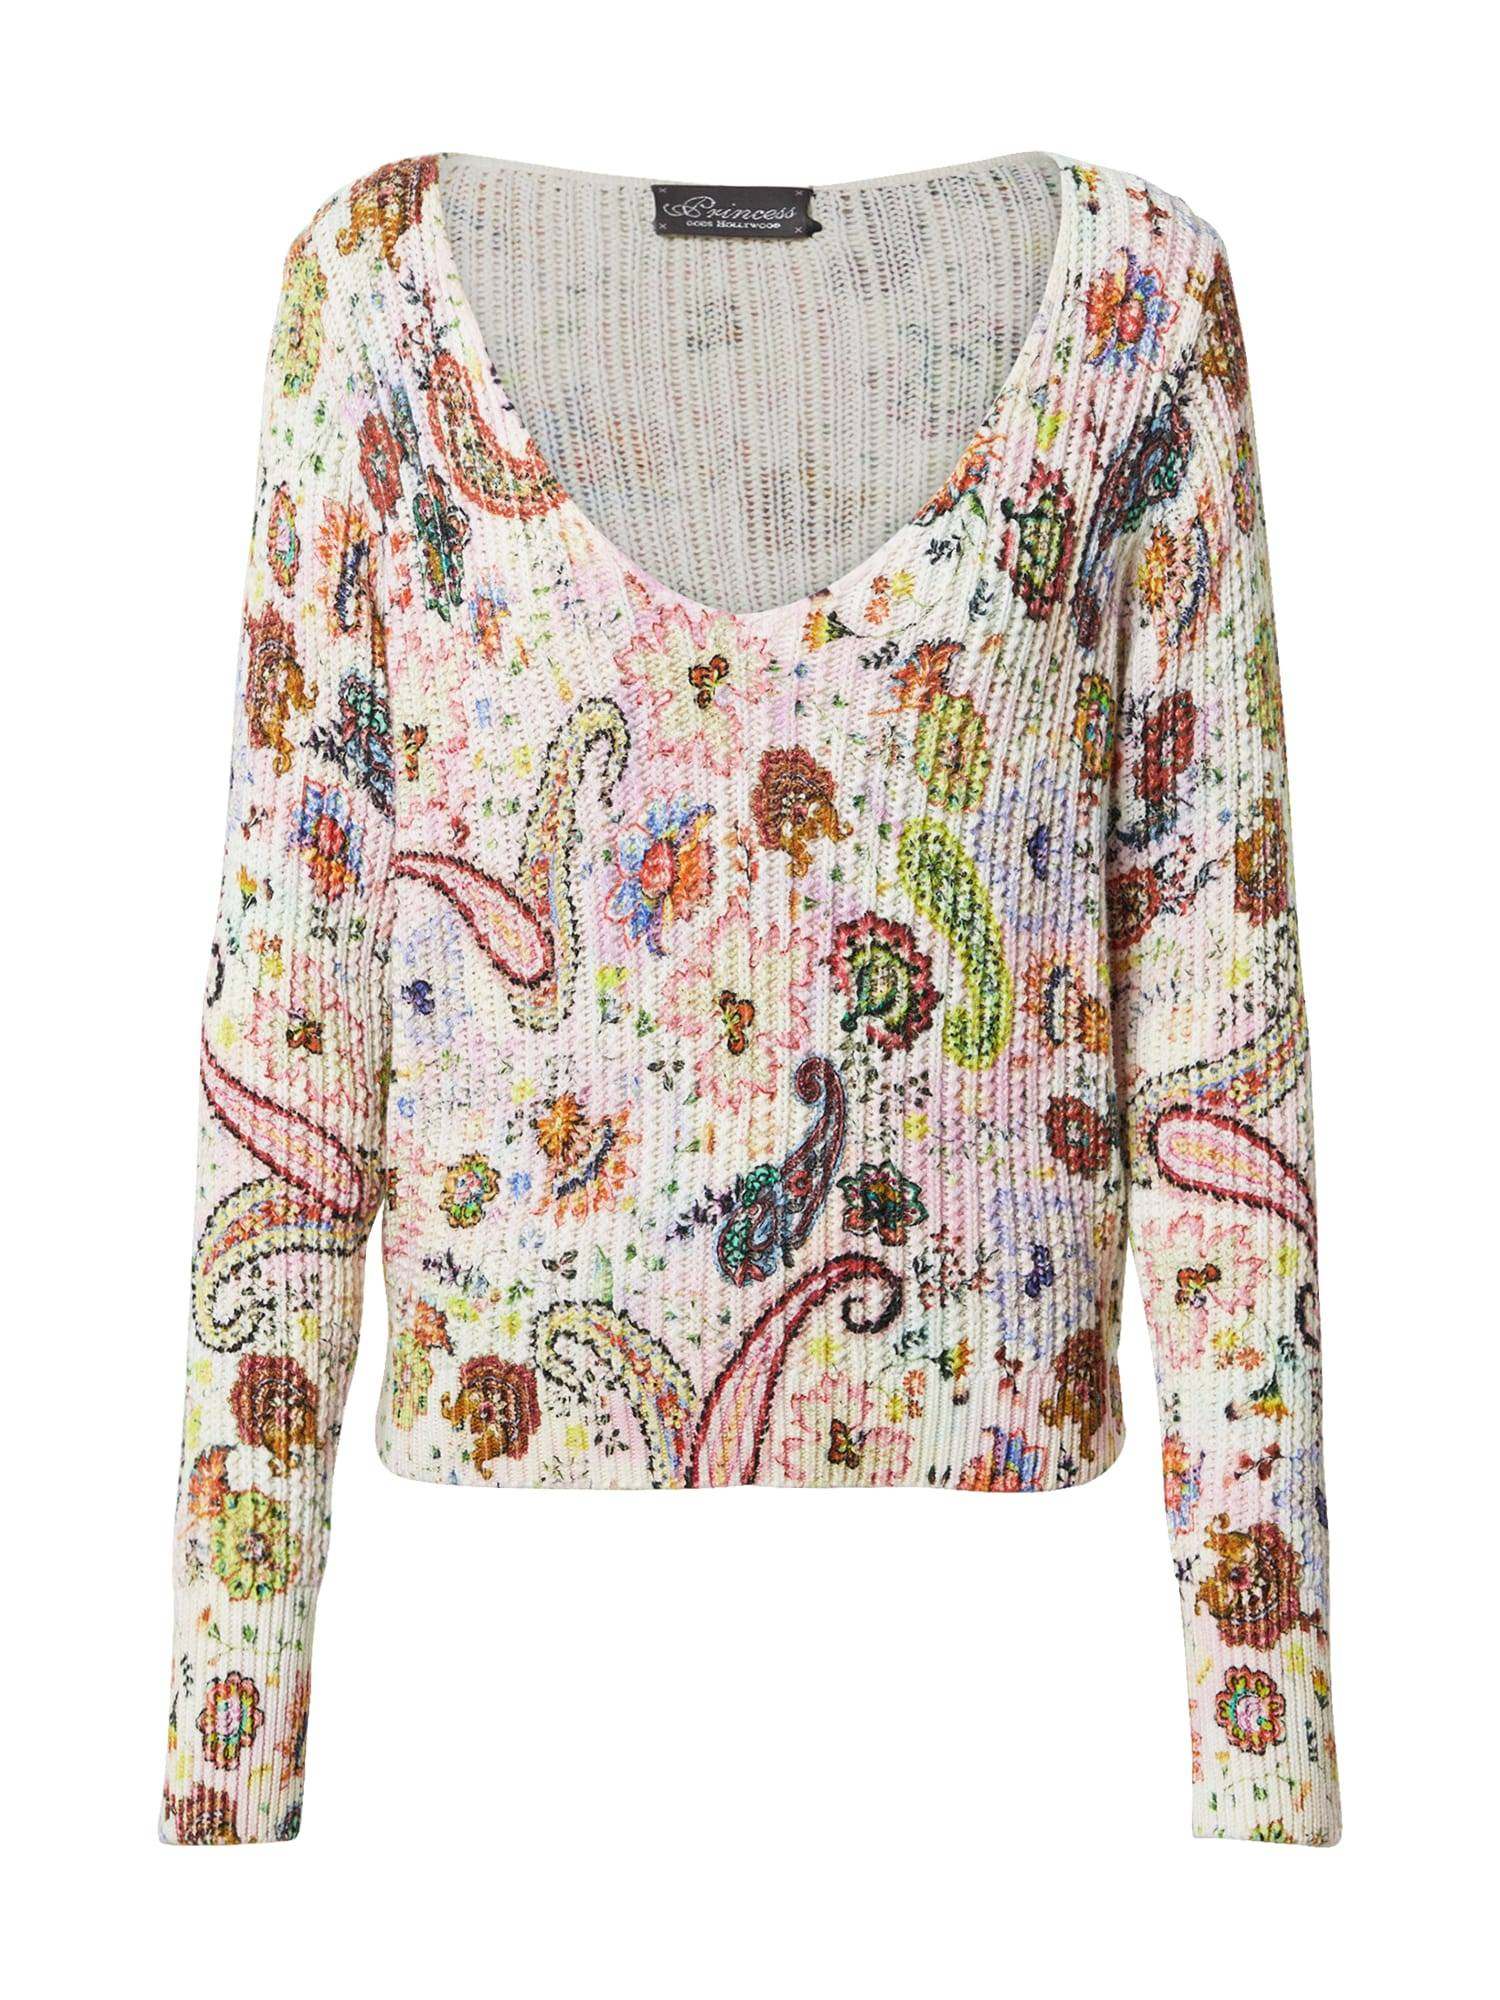 Princess Pull-over  - MéLange De Couleurs - Taille: 34 - female